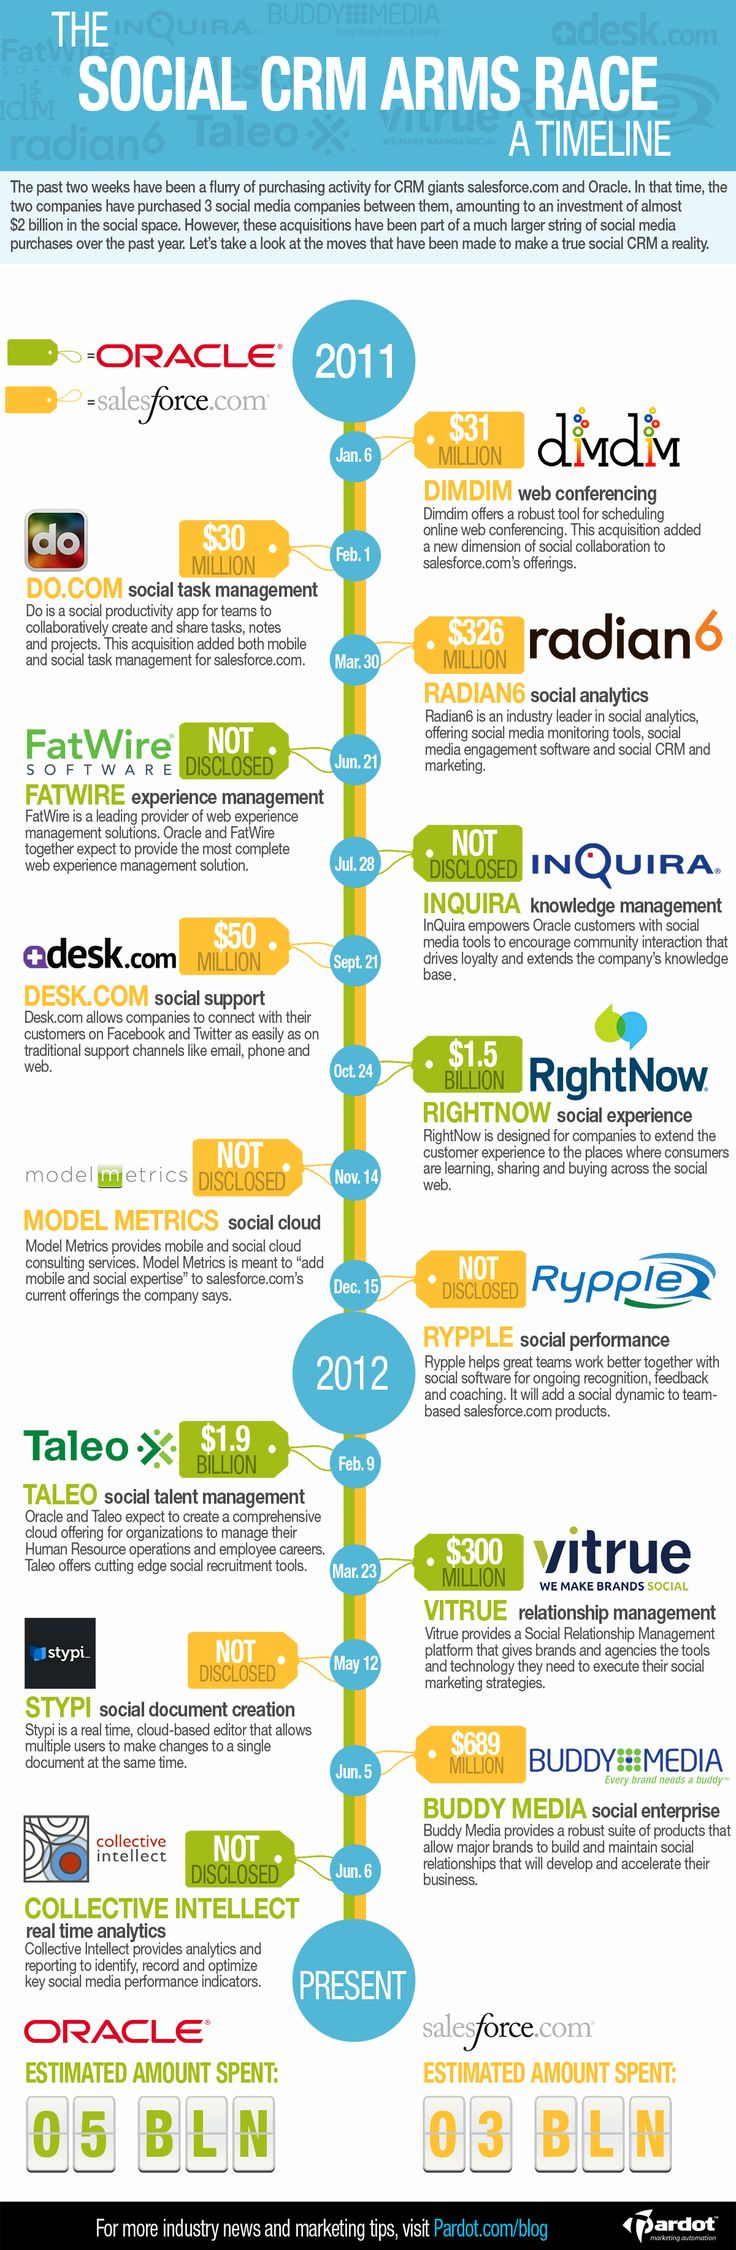 Social Times Article: Oracle and Salesforce Face off in the Social CRM Arms Race [Infographic]  by Devon Glenn